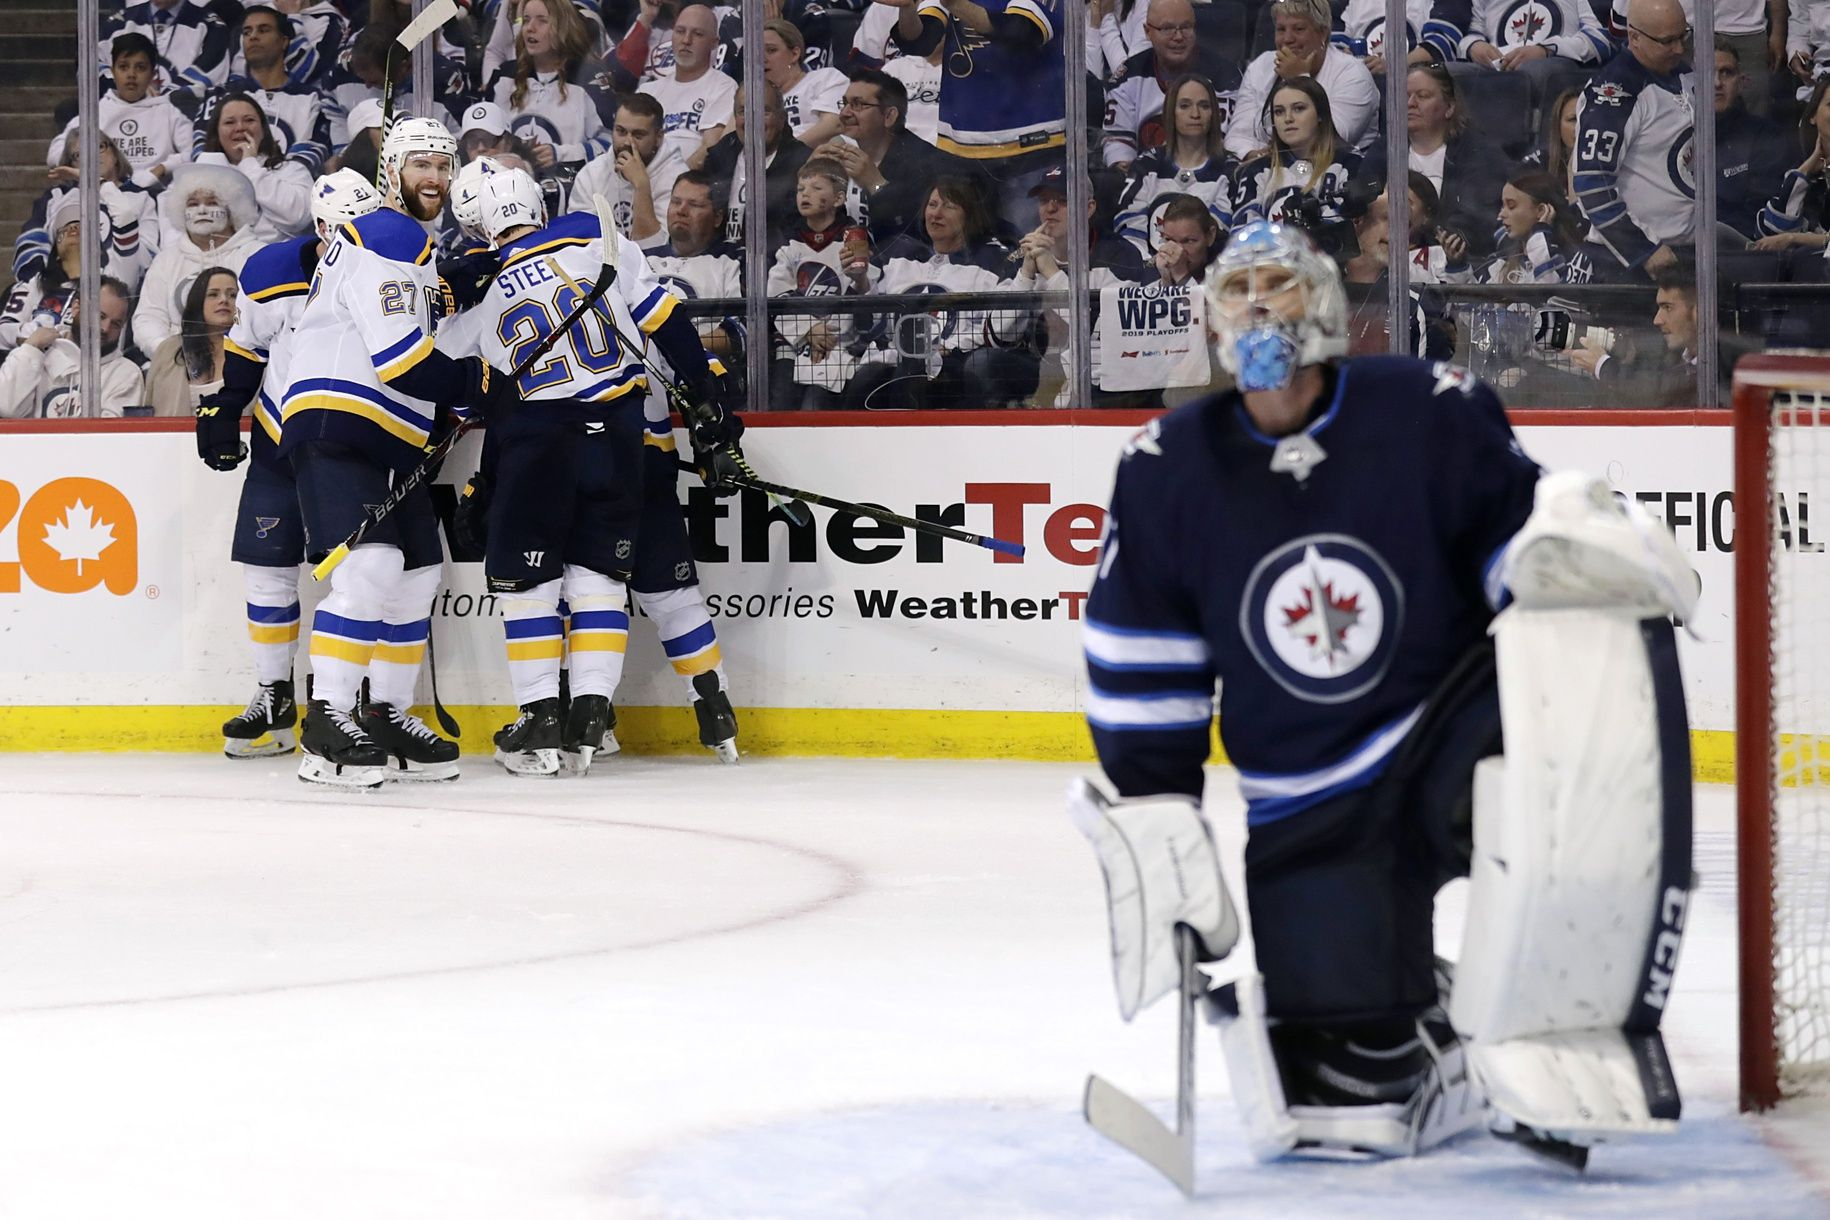 Picture for question *YOUR OPINION:* What was the biggest issue that led to such a disappointing season for the Winnipeg Jets and needs to be addressed first and foremost going into next season?